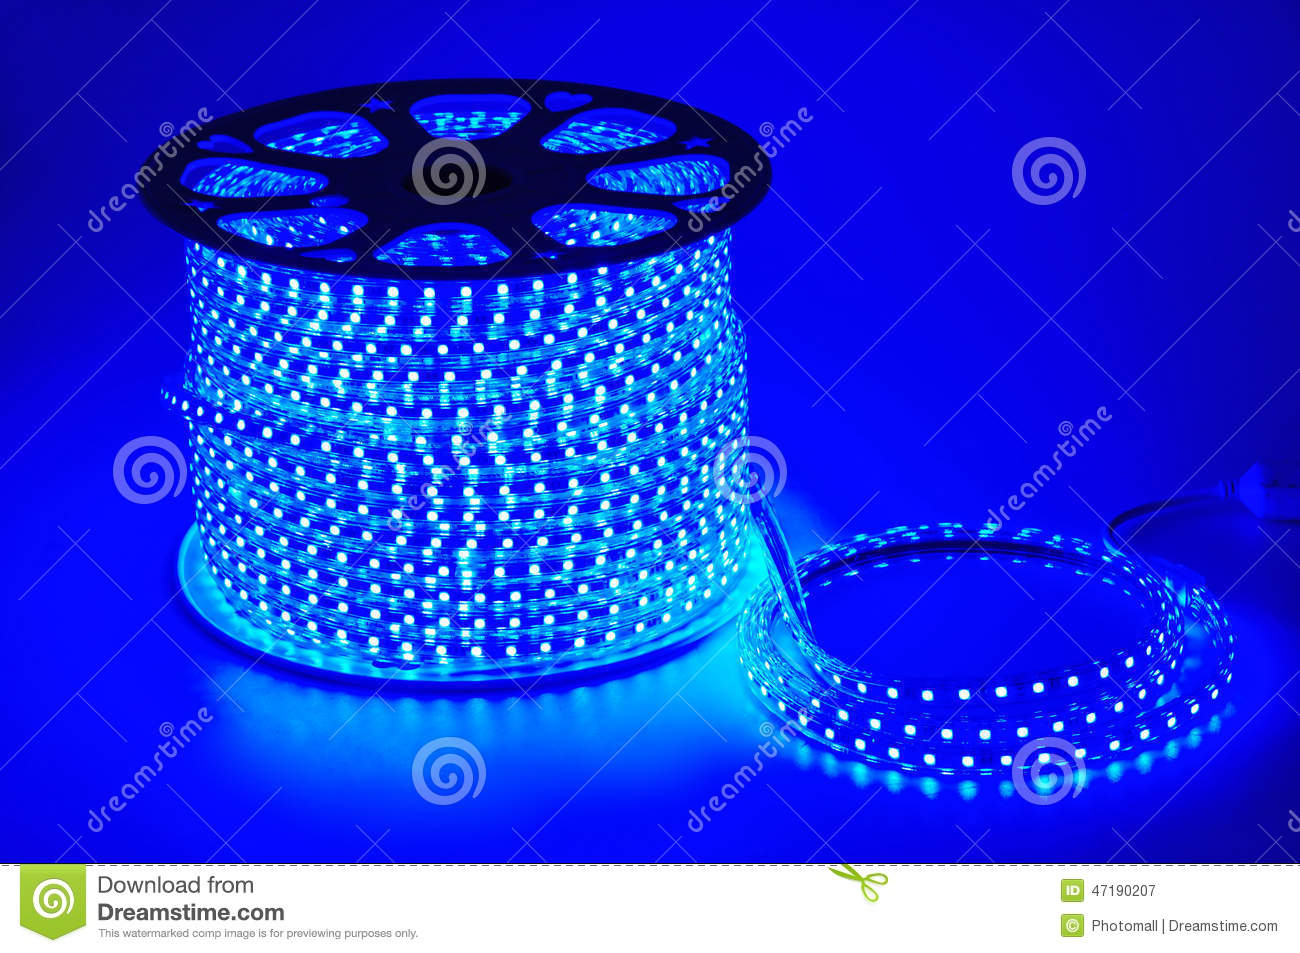 Buddha Decorations For The Home Blue Light Led Belt Led Strip Home Decoration Floral